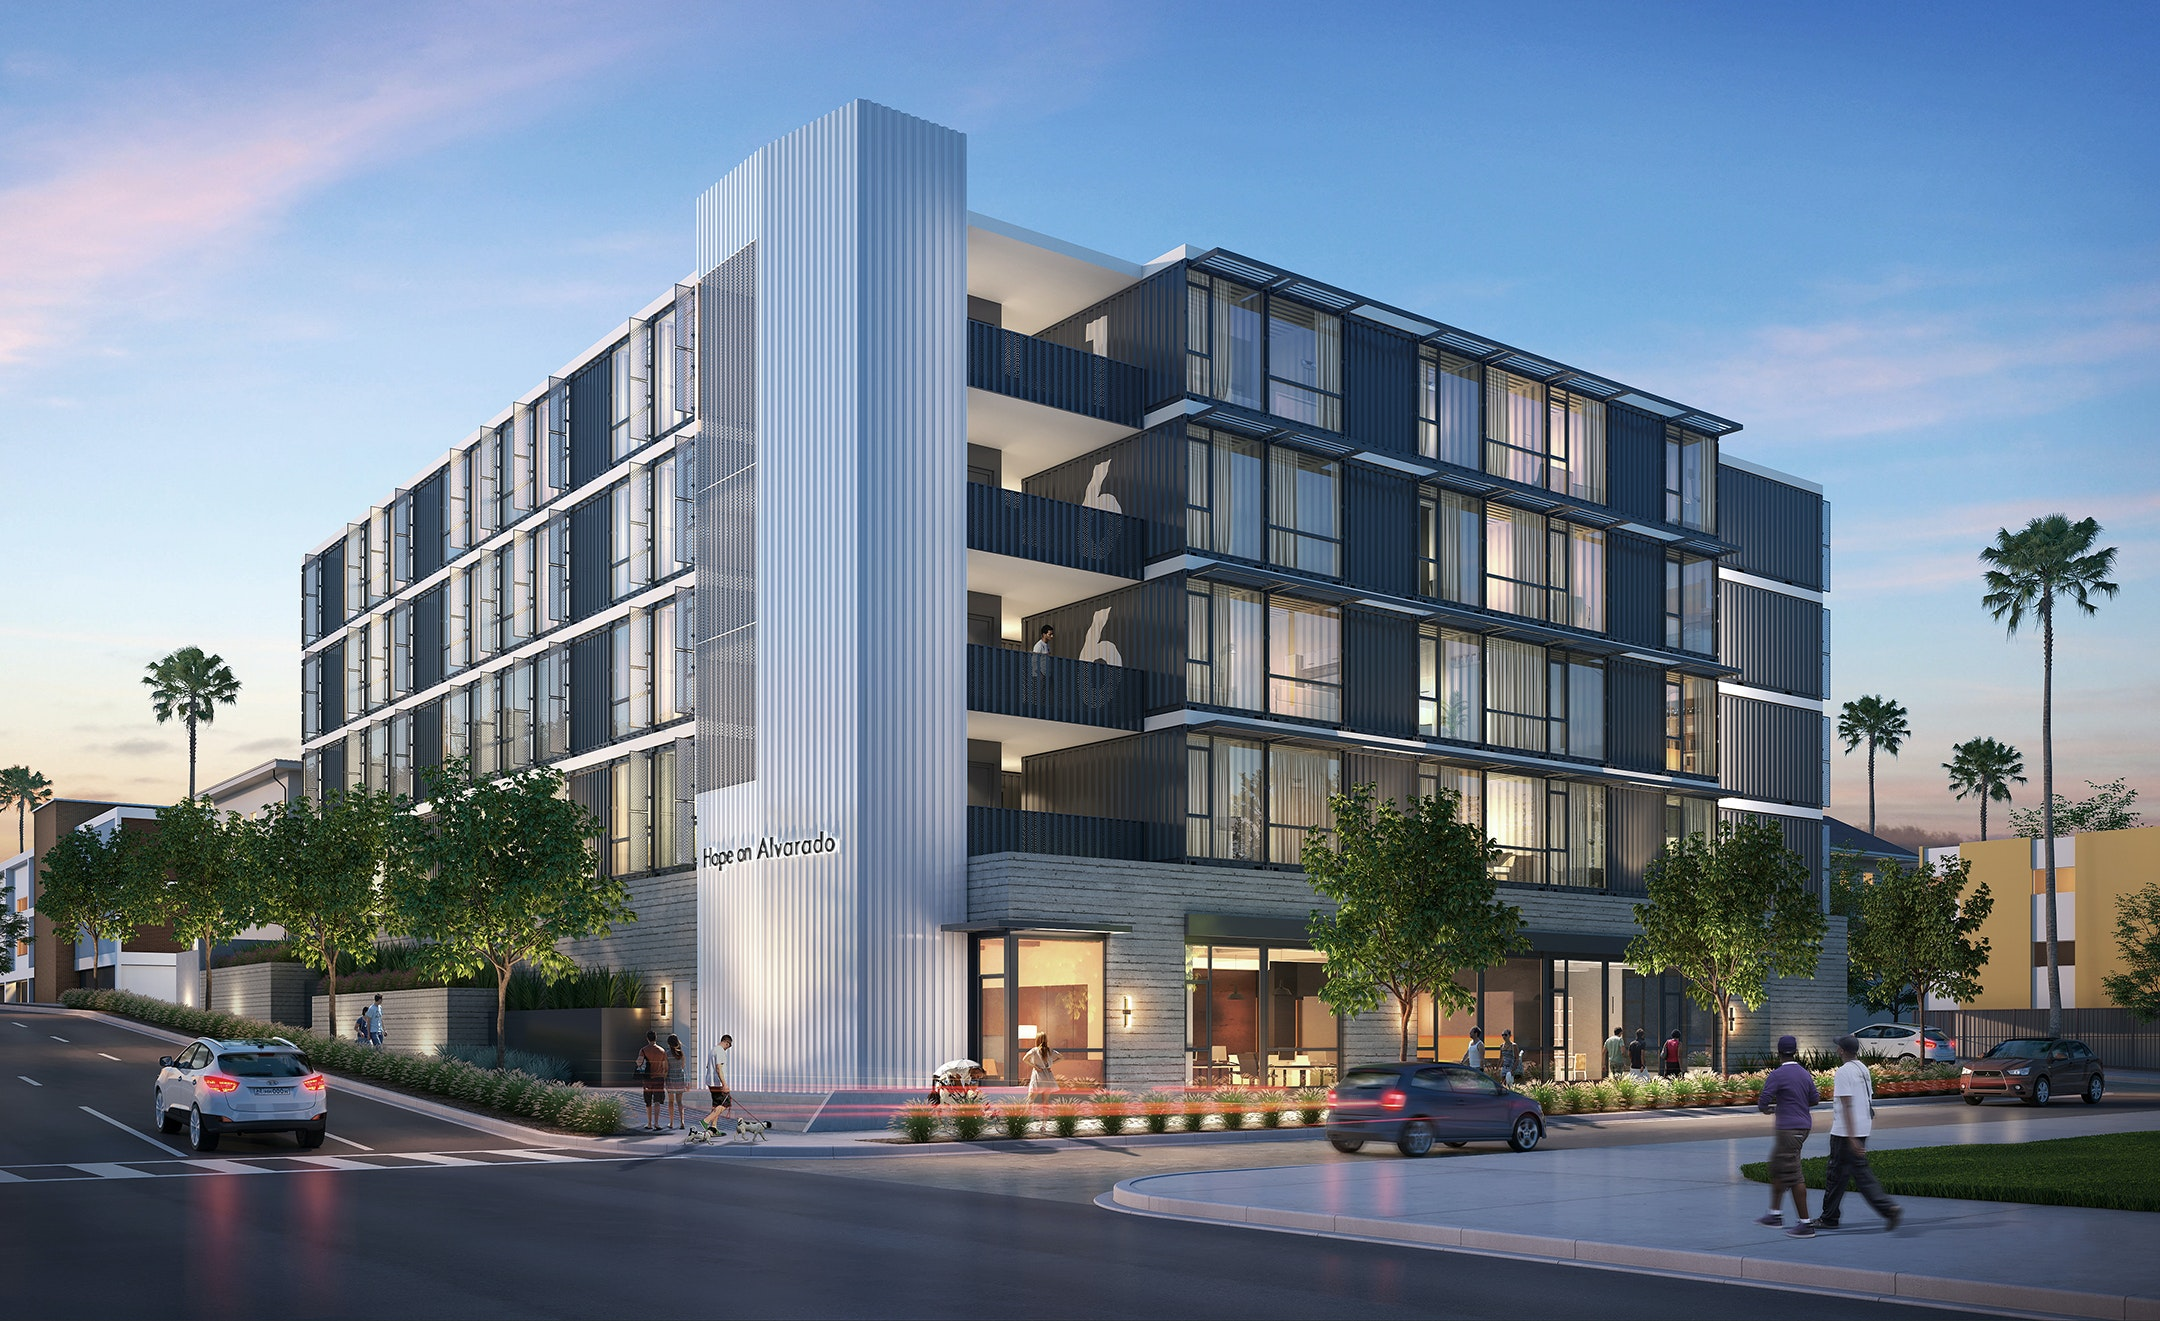 In Los Angeles, The Architecture Firm KTGY Is Repurposing Shipping  Containers To Build A Transitional Apartment Complex For The Homeless. KTGY